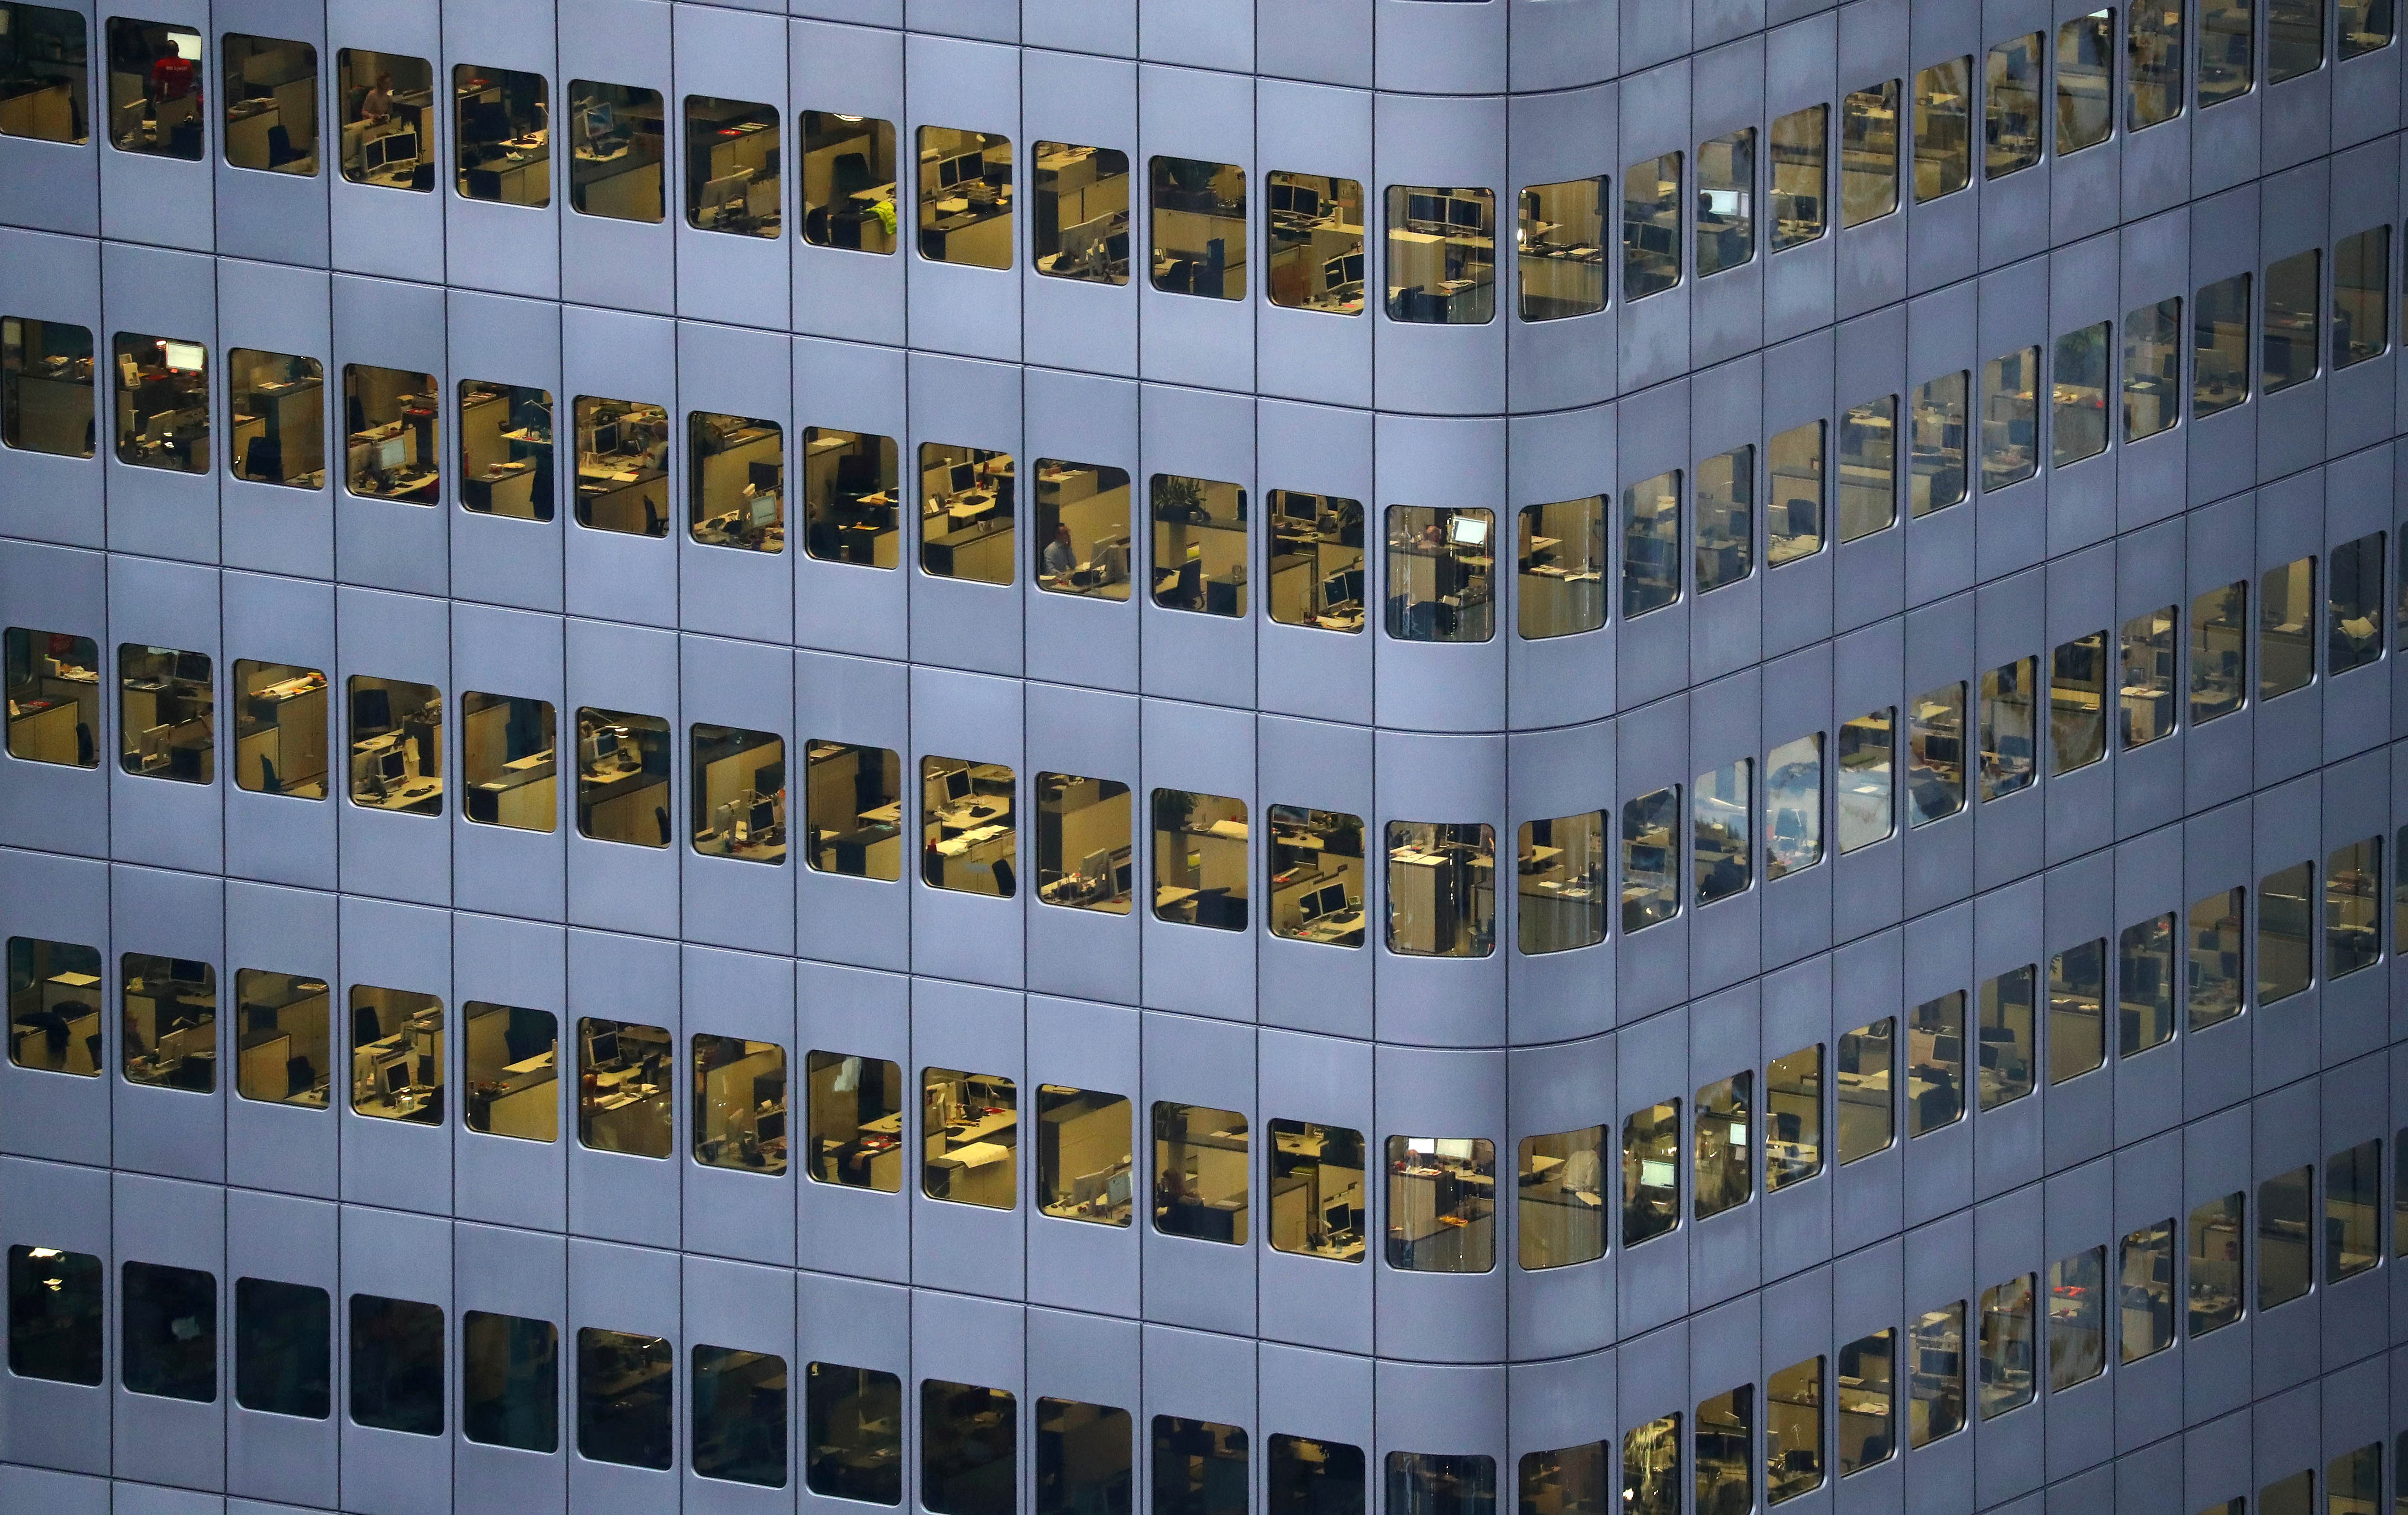 An office building is photographed from a tourist platform early evening in Frankfurt, Germany January 31, 2017. REUTERS/Kai Pfaffenbach